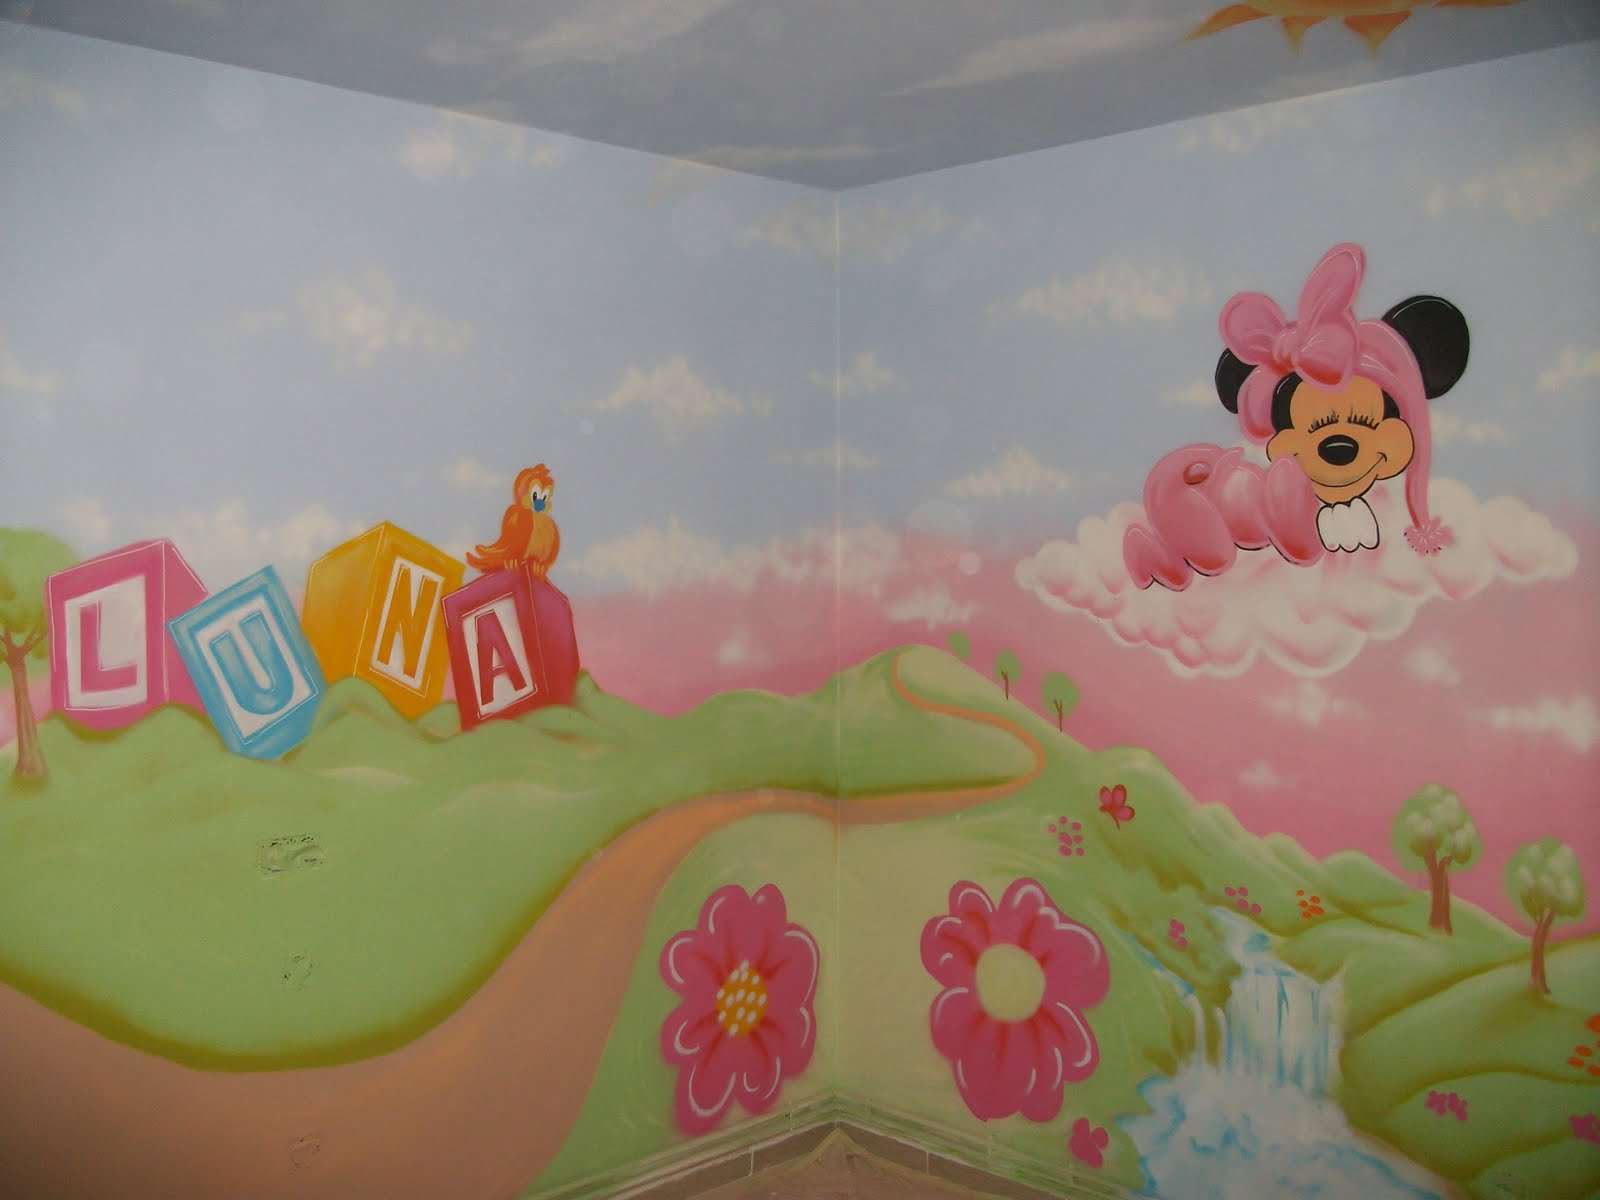 Graffiti Bear Tck Decoracion Graffiti En Habitacion Bear Tck